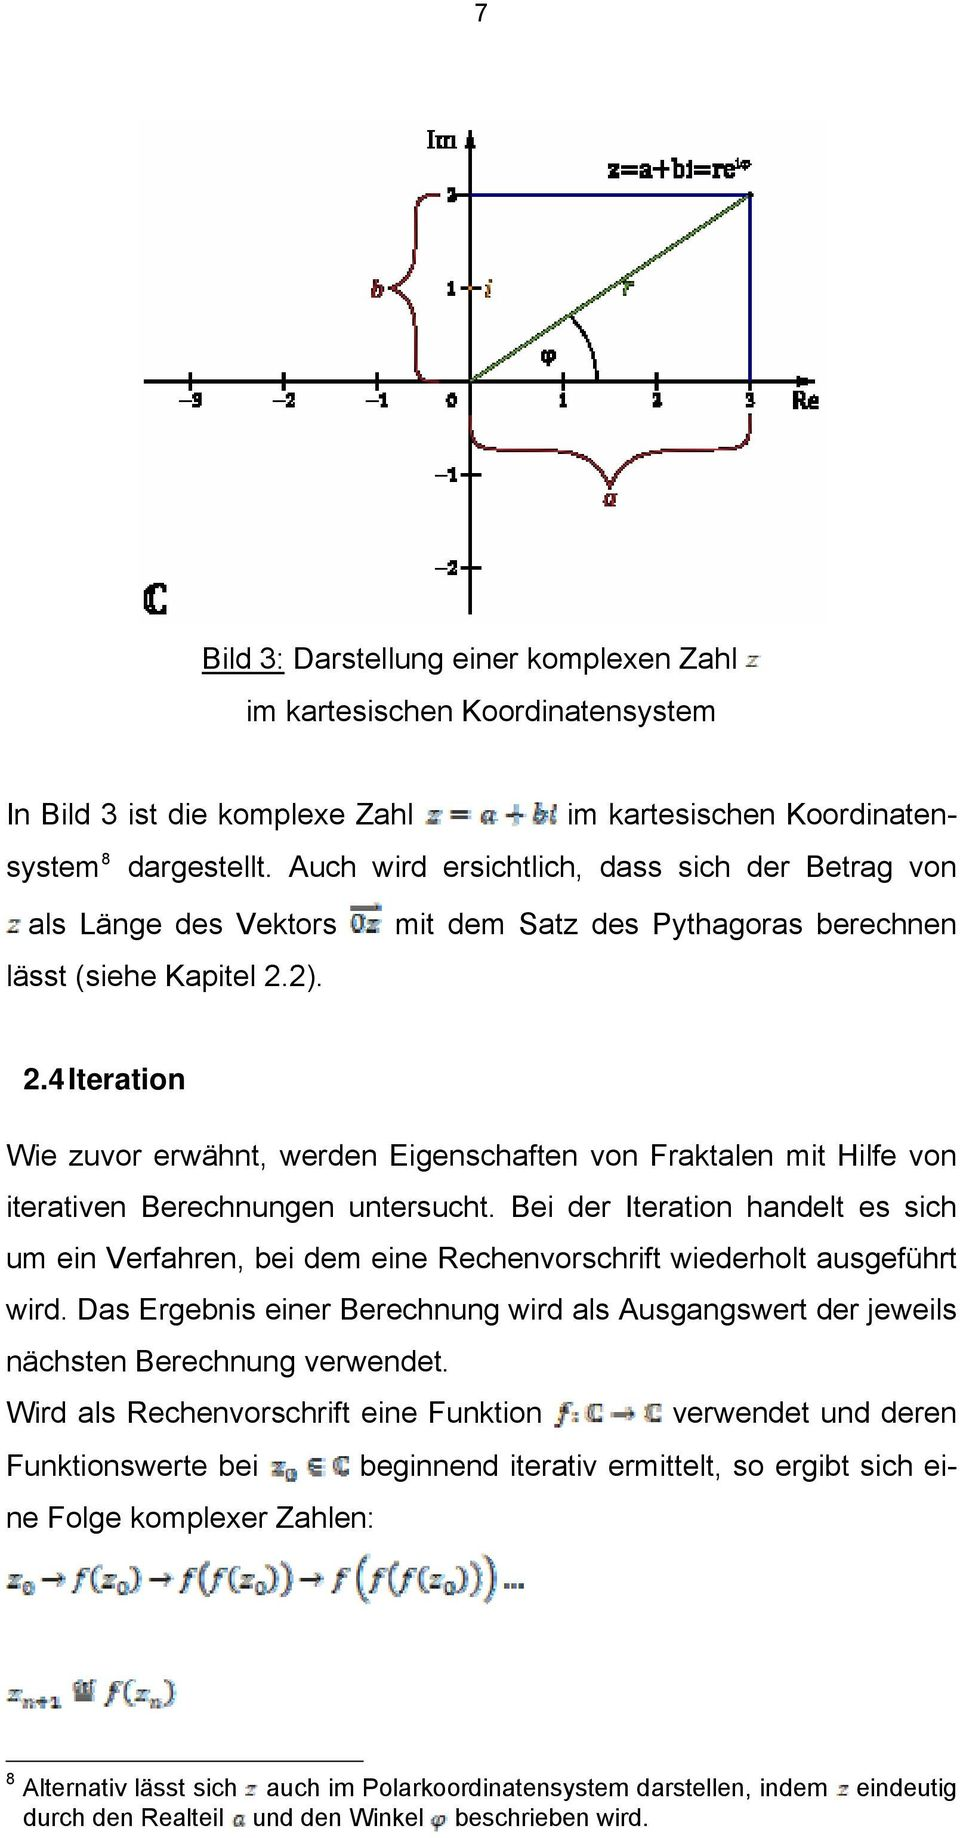 Perfect 6Standard Mathe Arbeitsblatt Photos - Mathe Arbeitsblatt ...